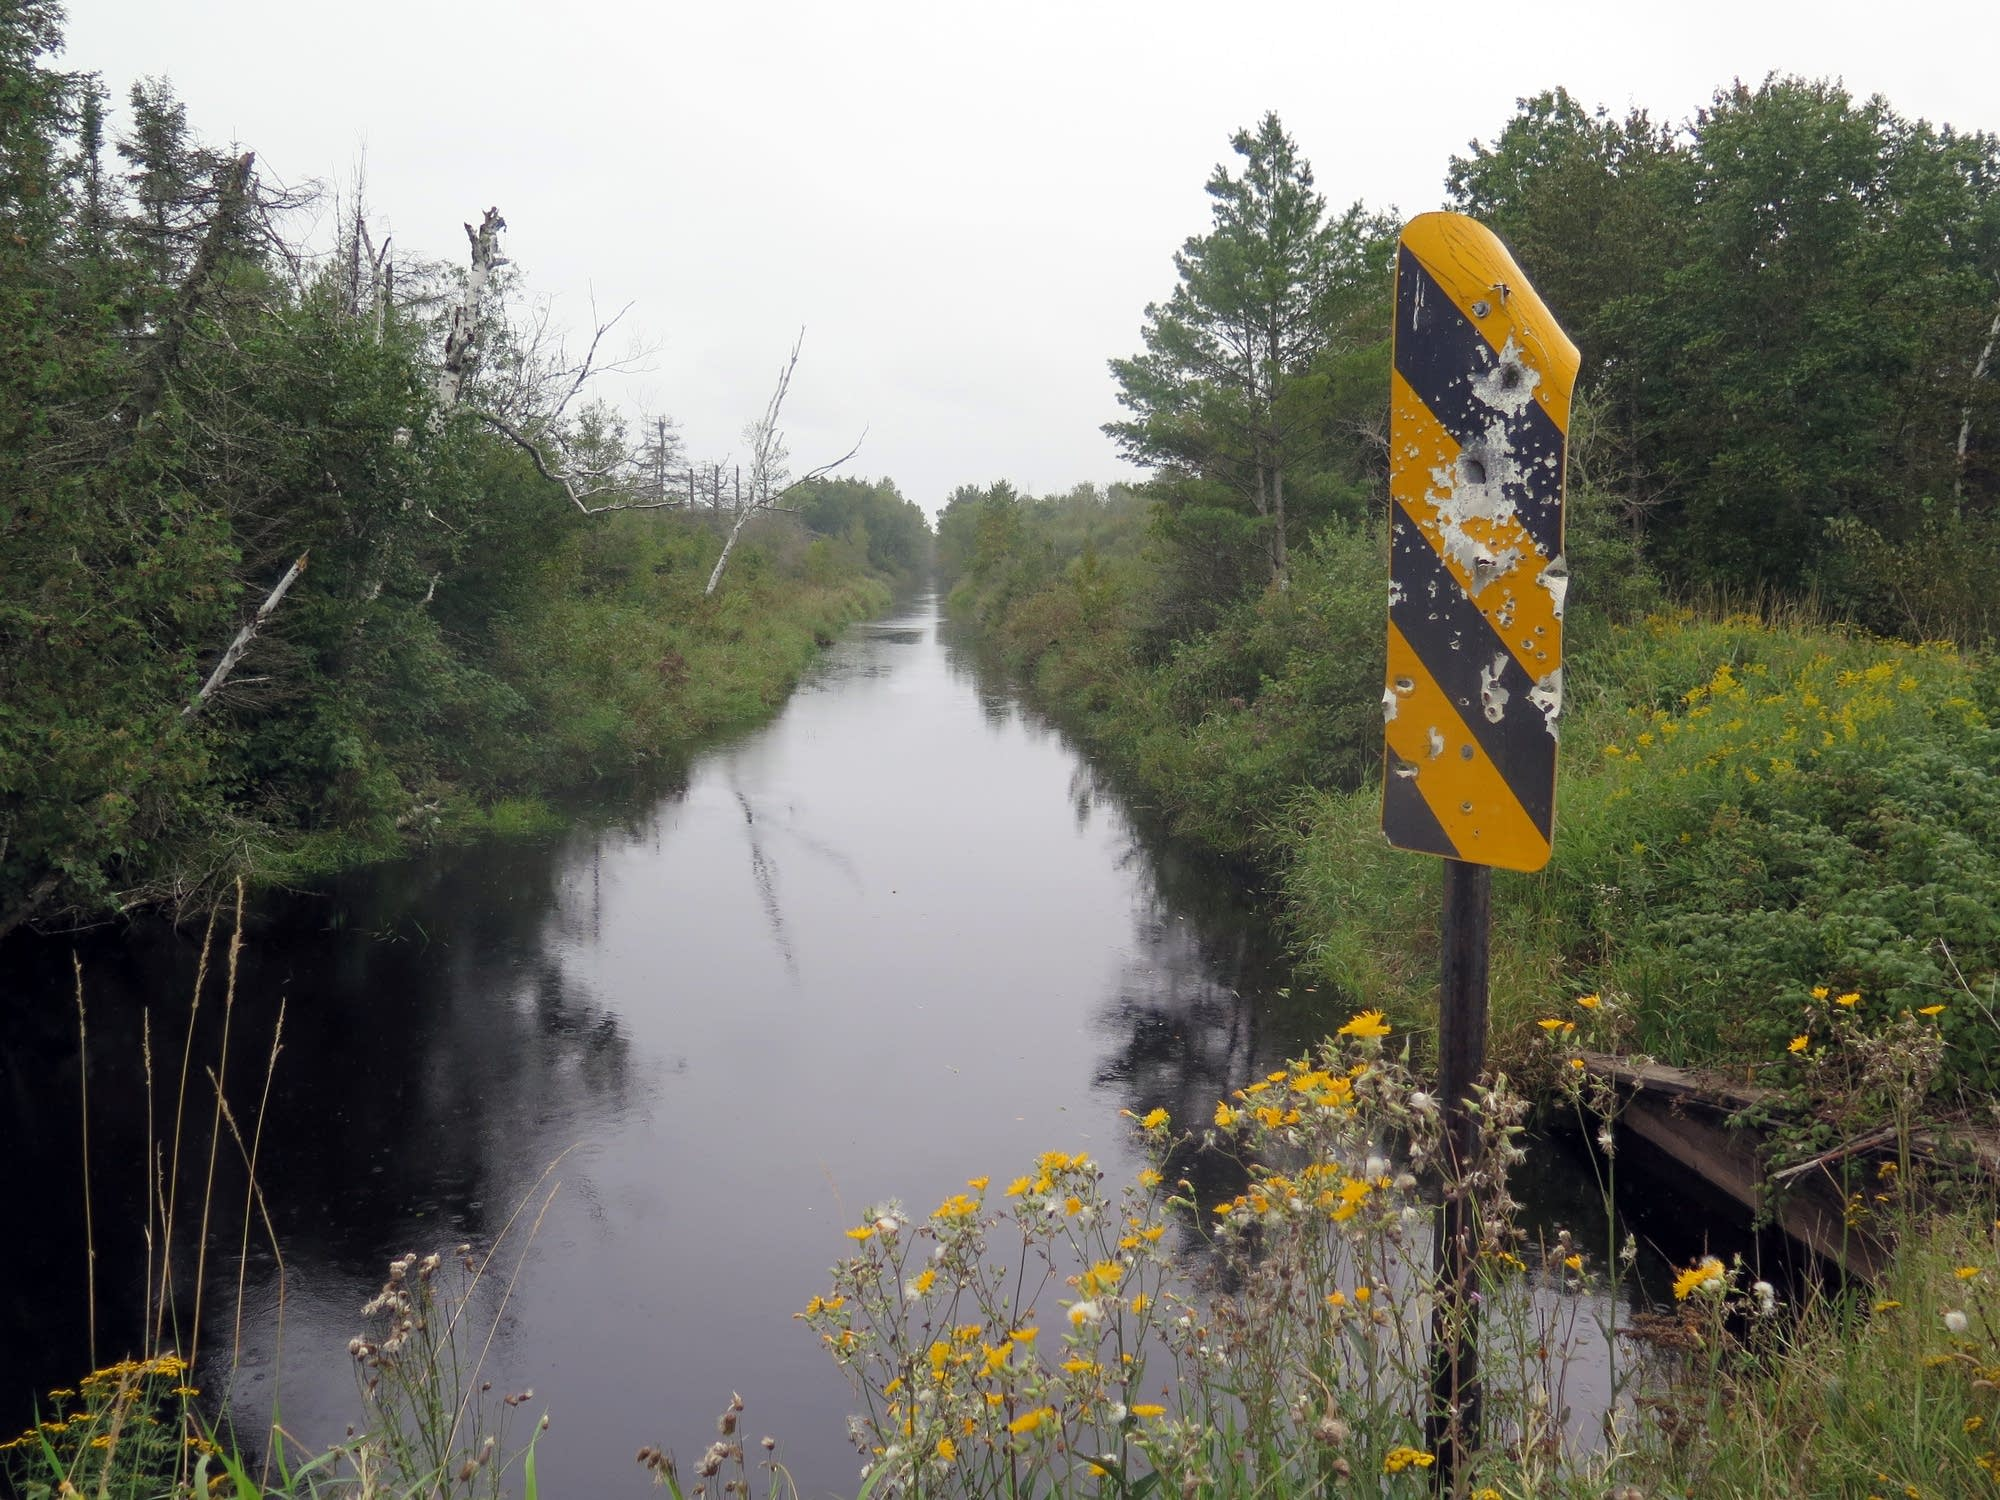 Drainage ditches dug in the 1900s degraded the area's wild rice lakes.